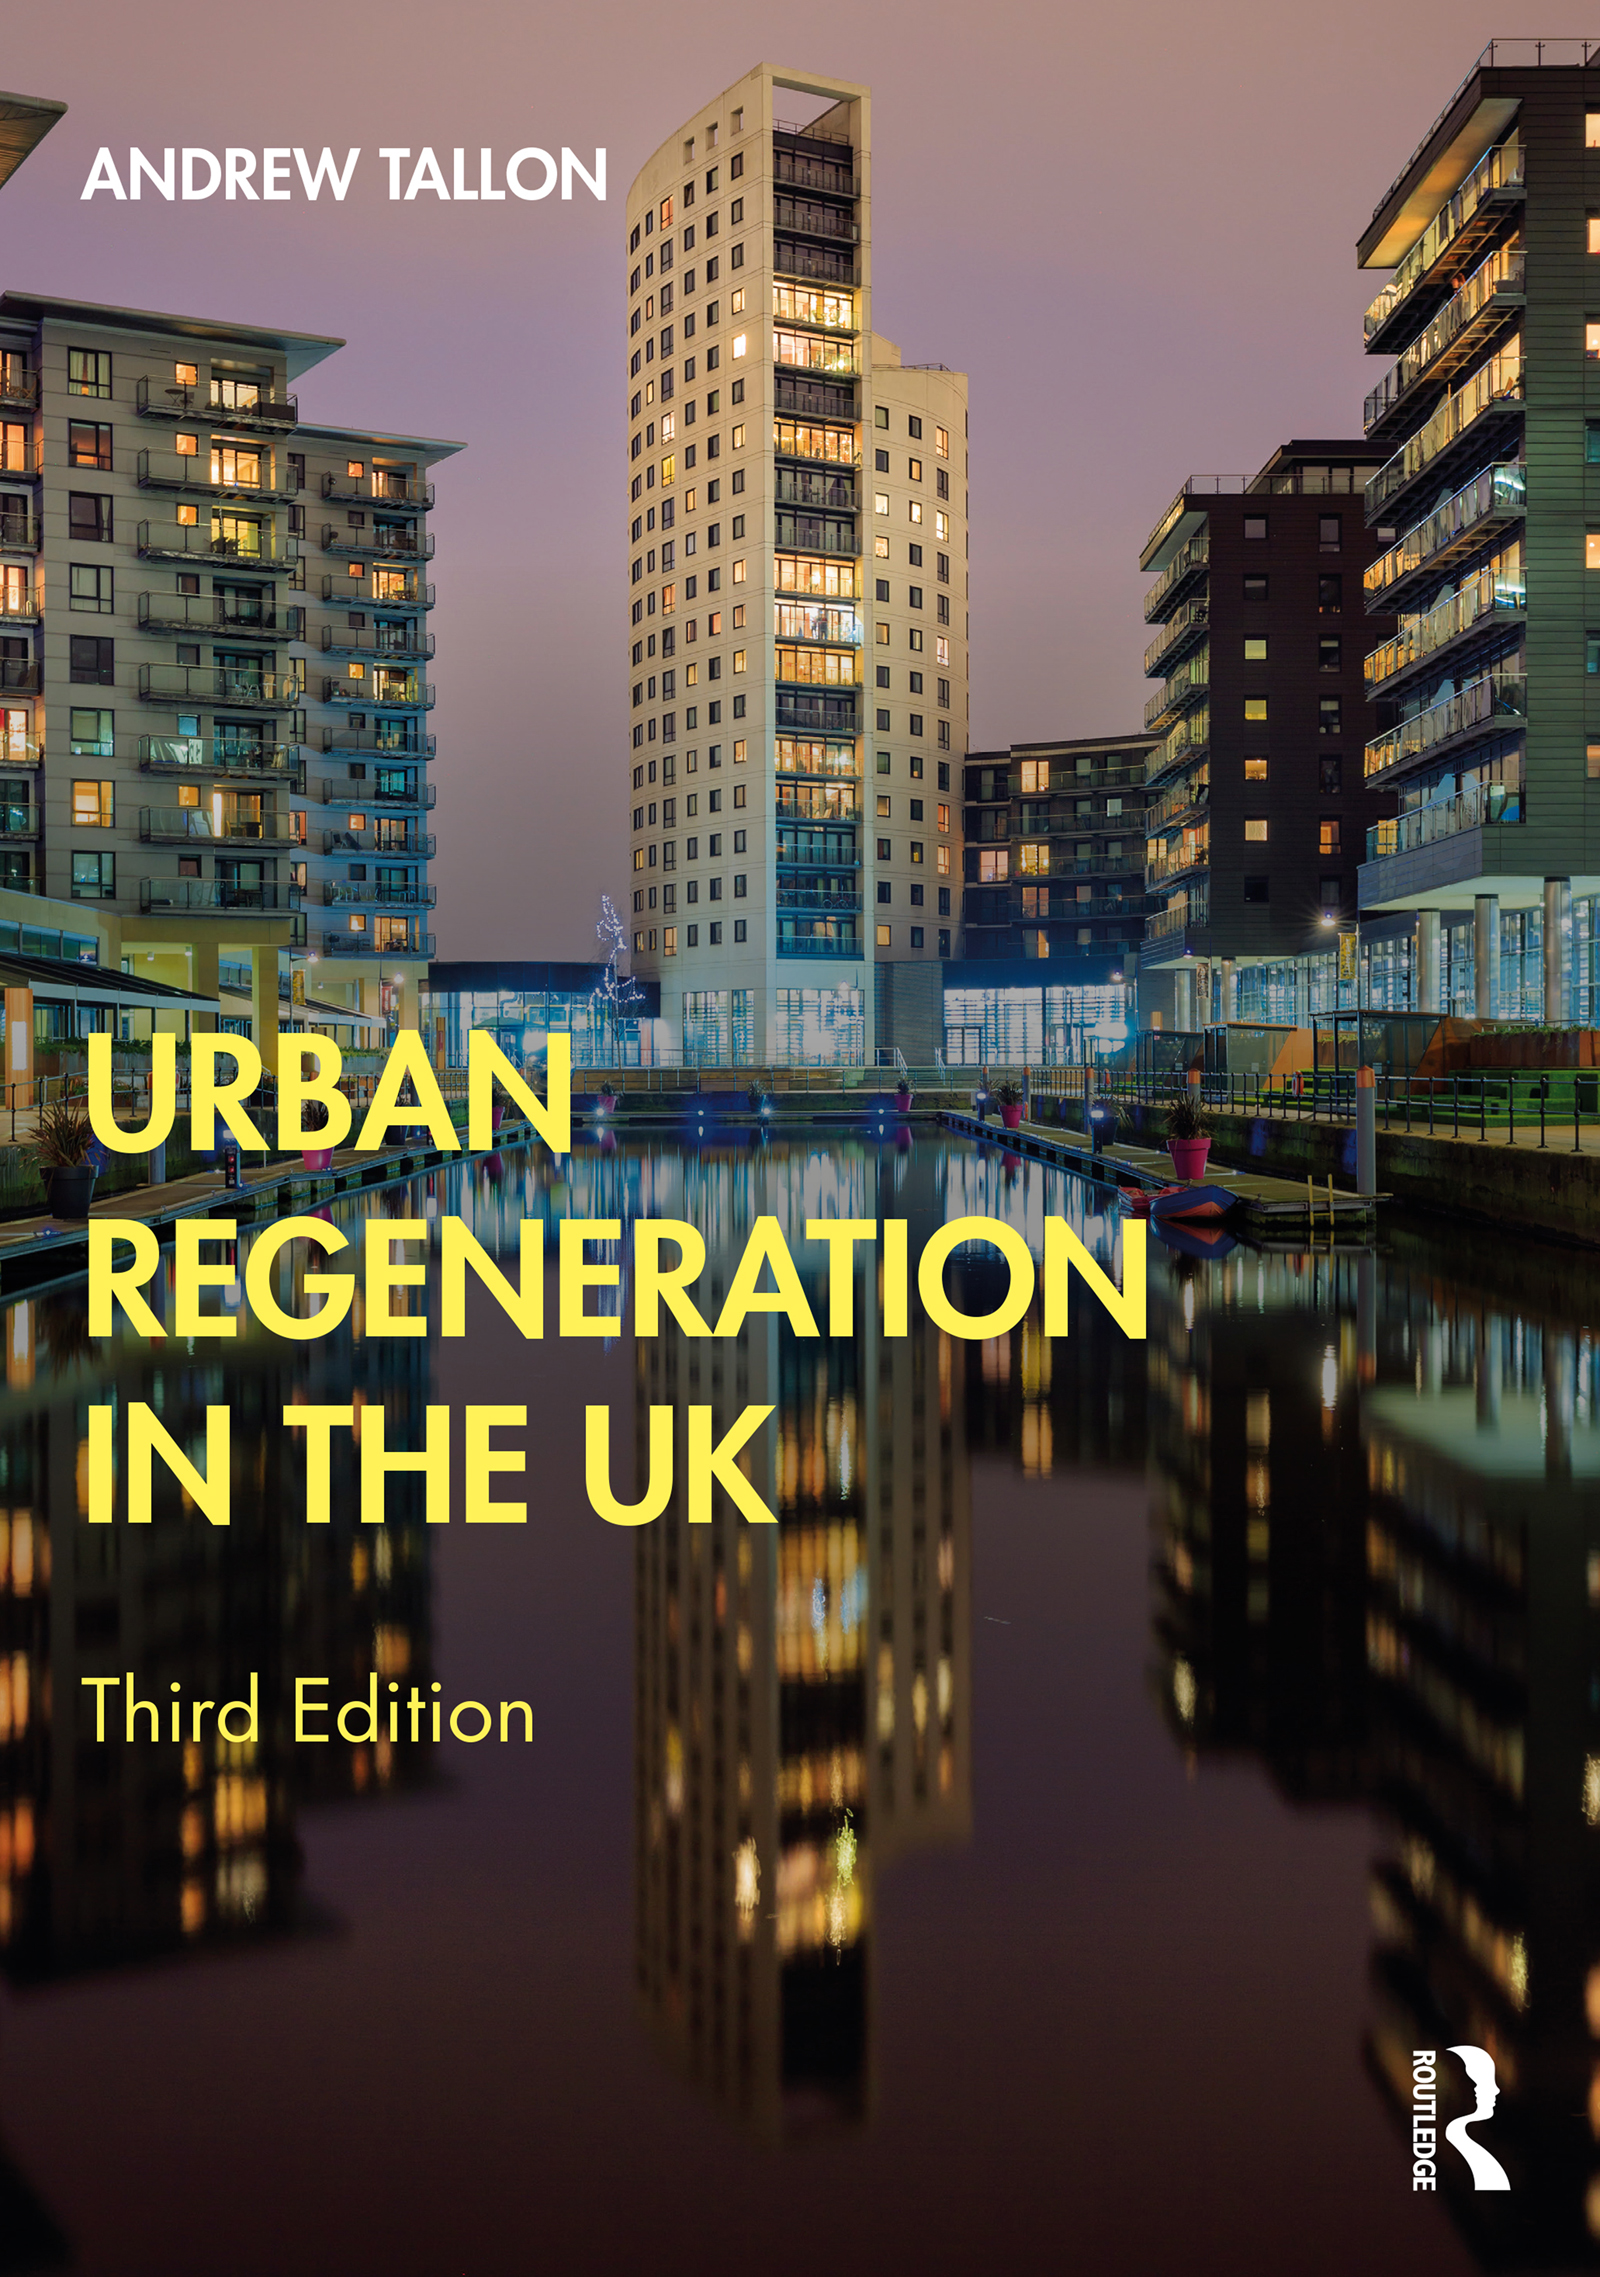 The early years of regeneration